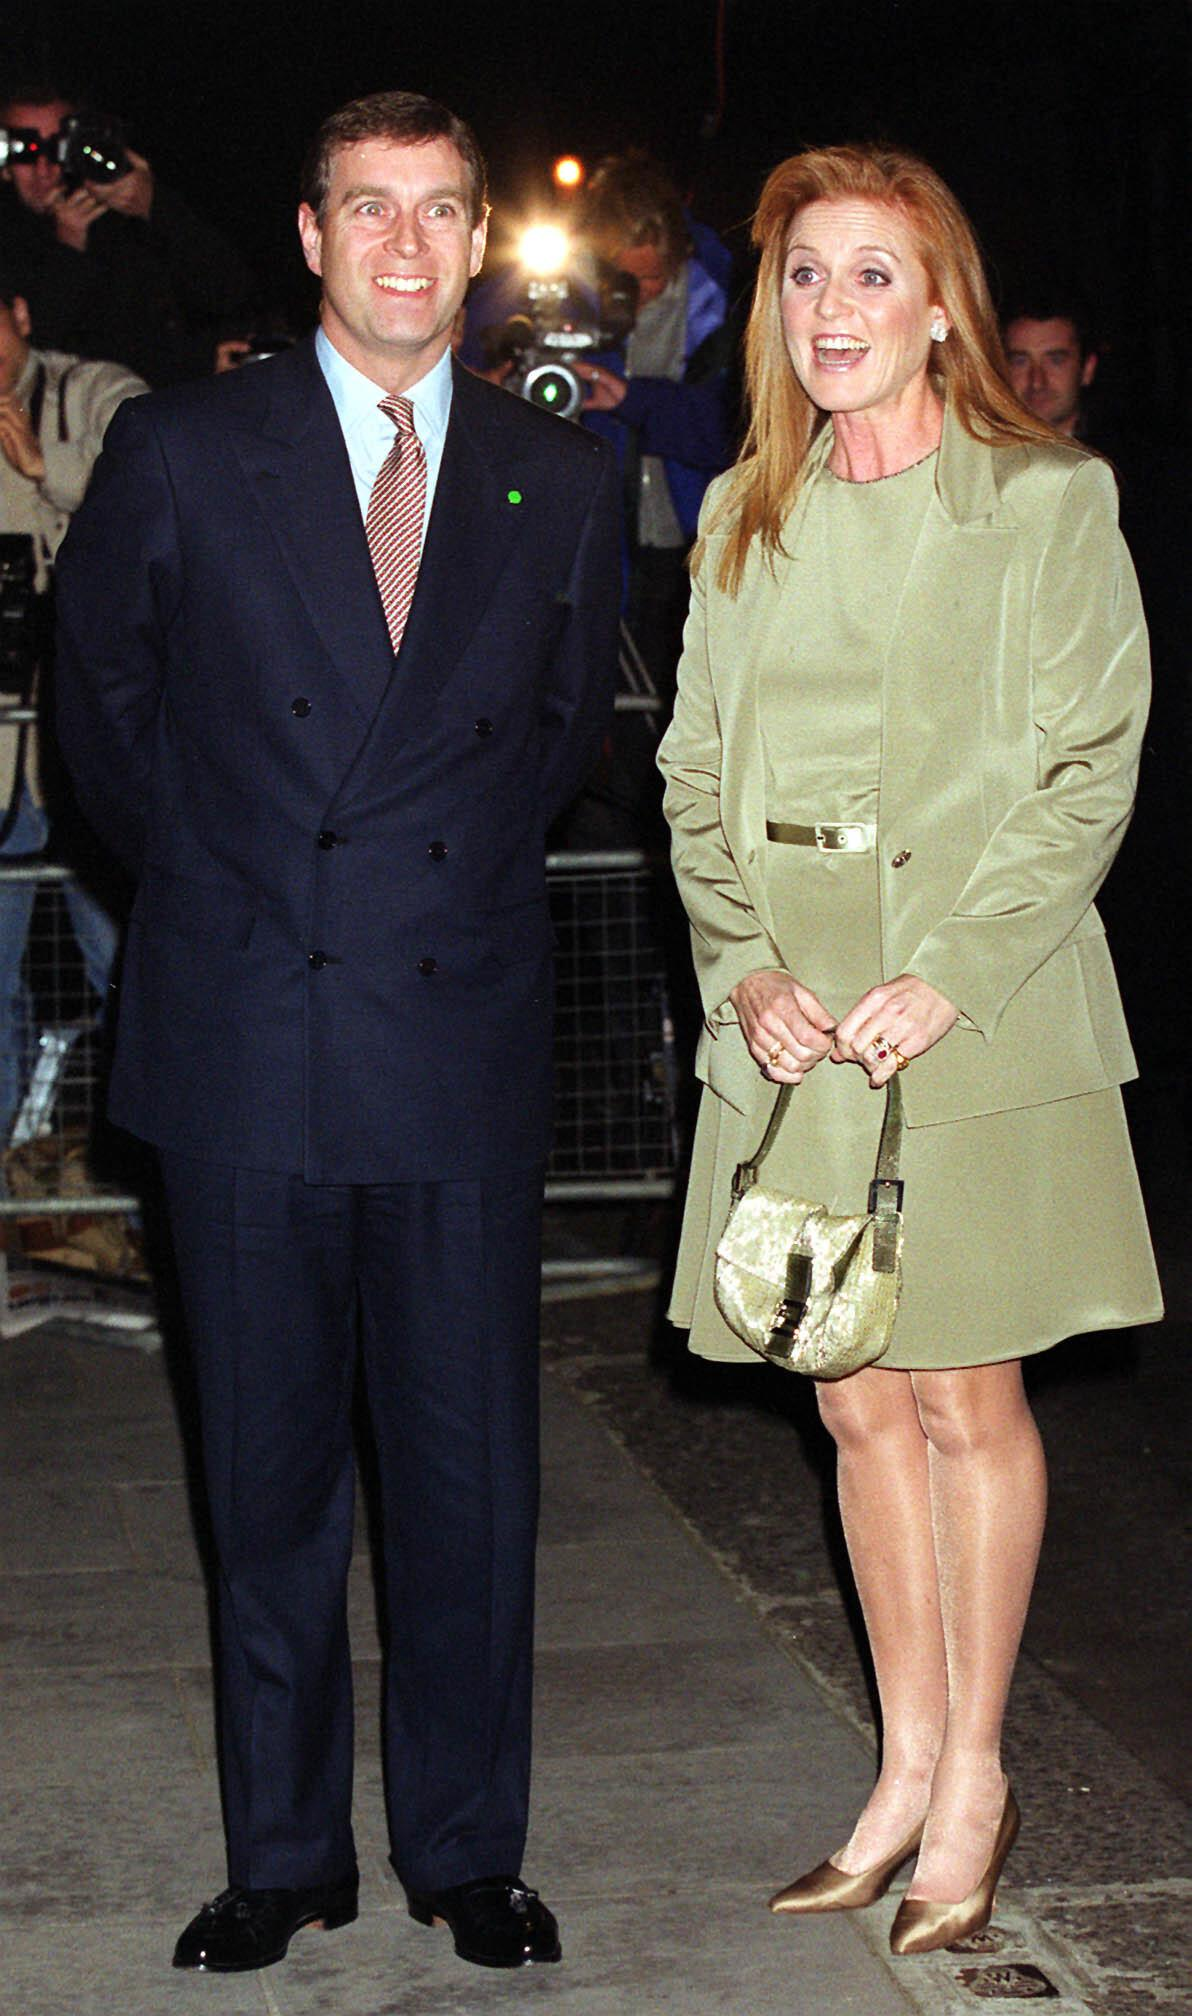 The Duke and Duchess of York arriving at Blakes Hotel in London, to attend a party in celebration of the Duchess's 40th birthday.